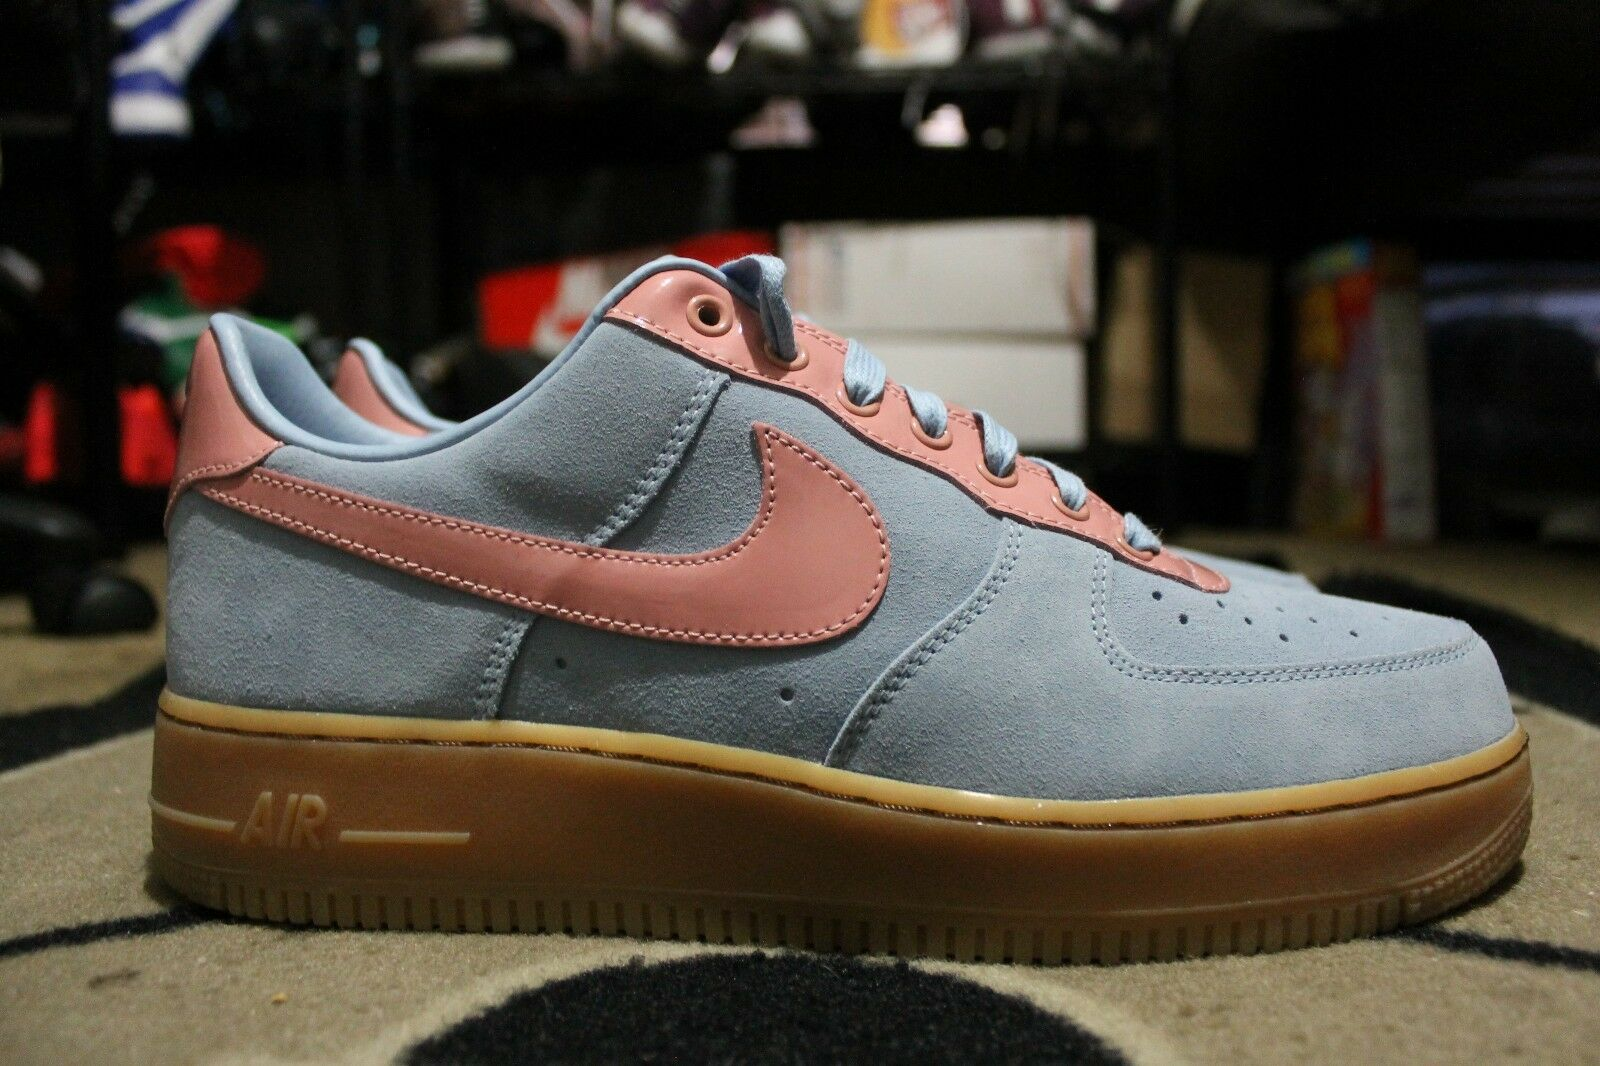 New Nike iD Air Force One 1 Low Premium Gum Bottom Size 10 Light Blue / Pink